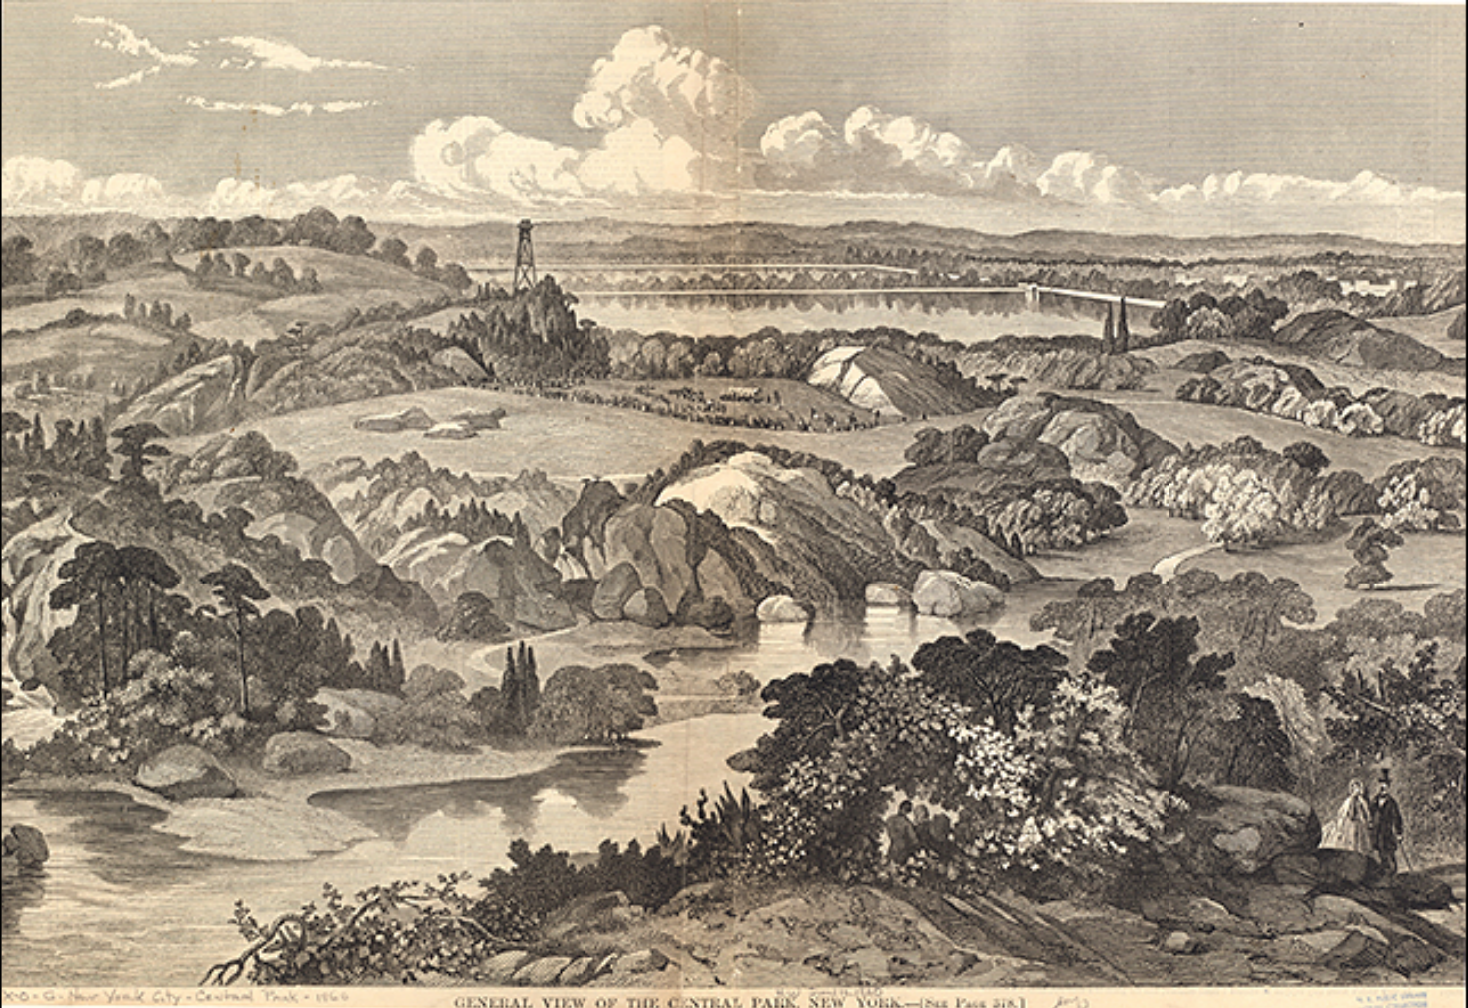 1860-general-view-of-central-park-16-june-1860-nypl